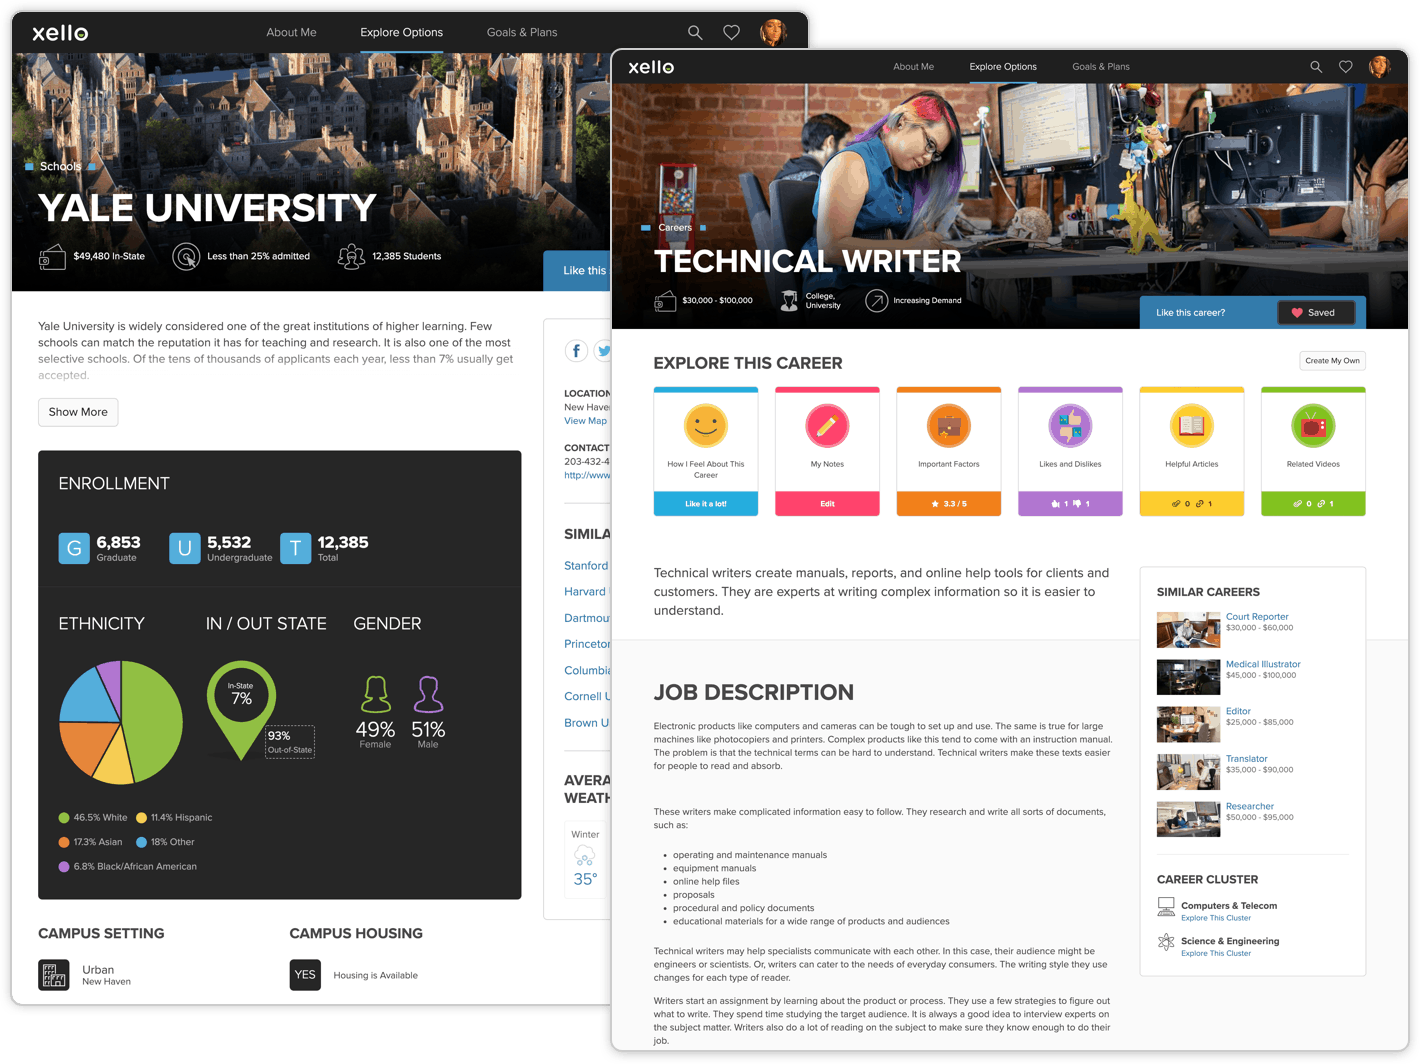 Rich, vibrant college and career profiles screens